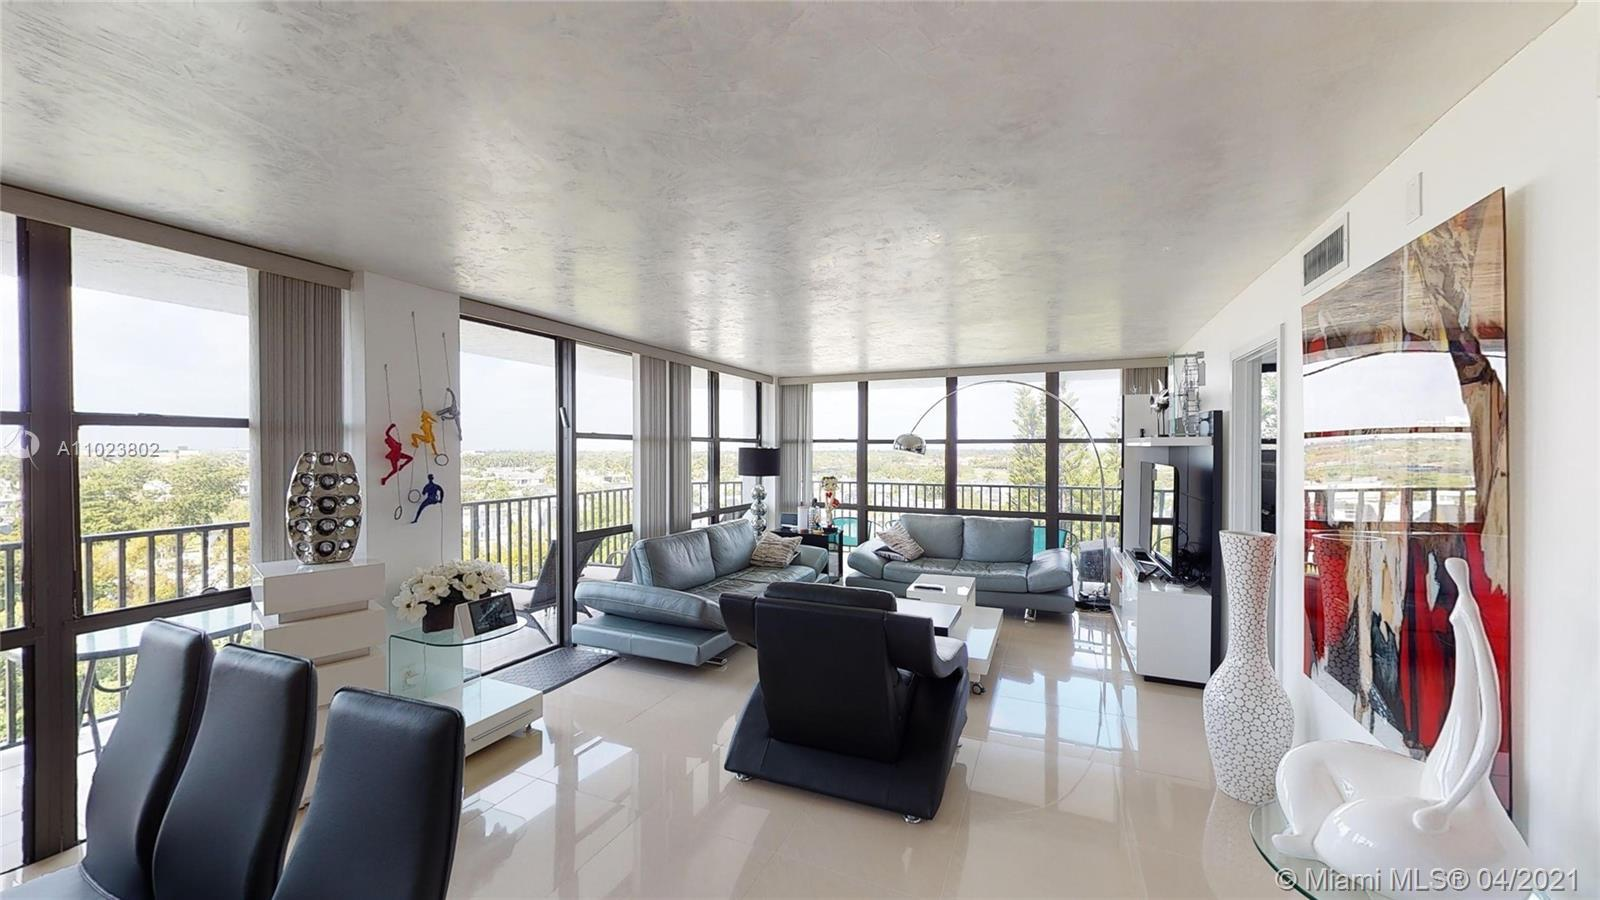 RARE and Desirable Renovated 3 Bedroom, 2 Bathroom Corner Unit! Enjoy Magical views and sunsets from